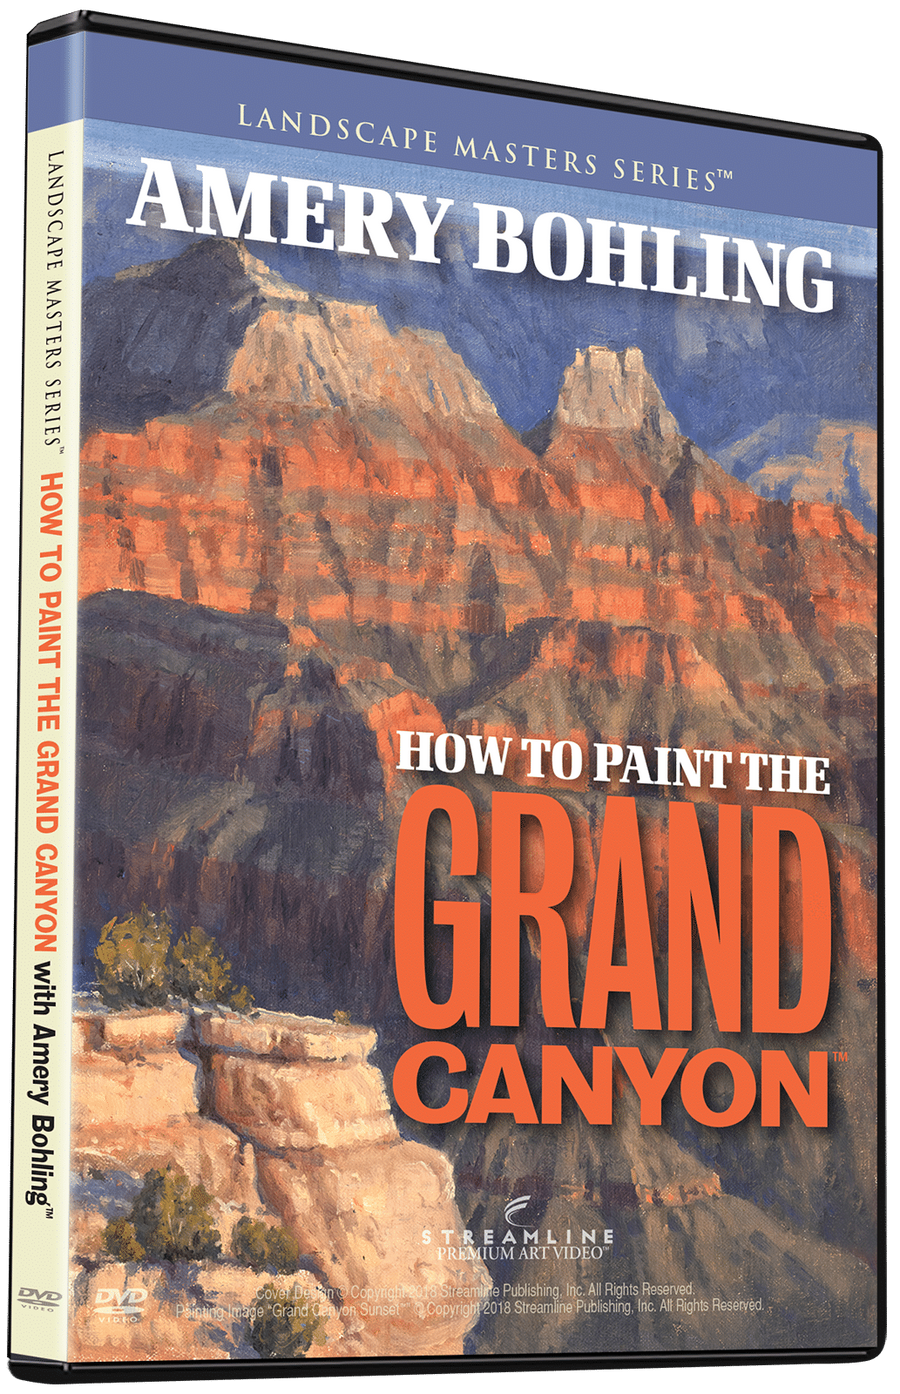 amery bohling how to paint the grand canyon